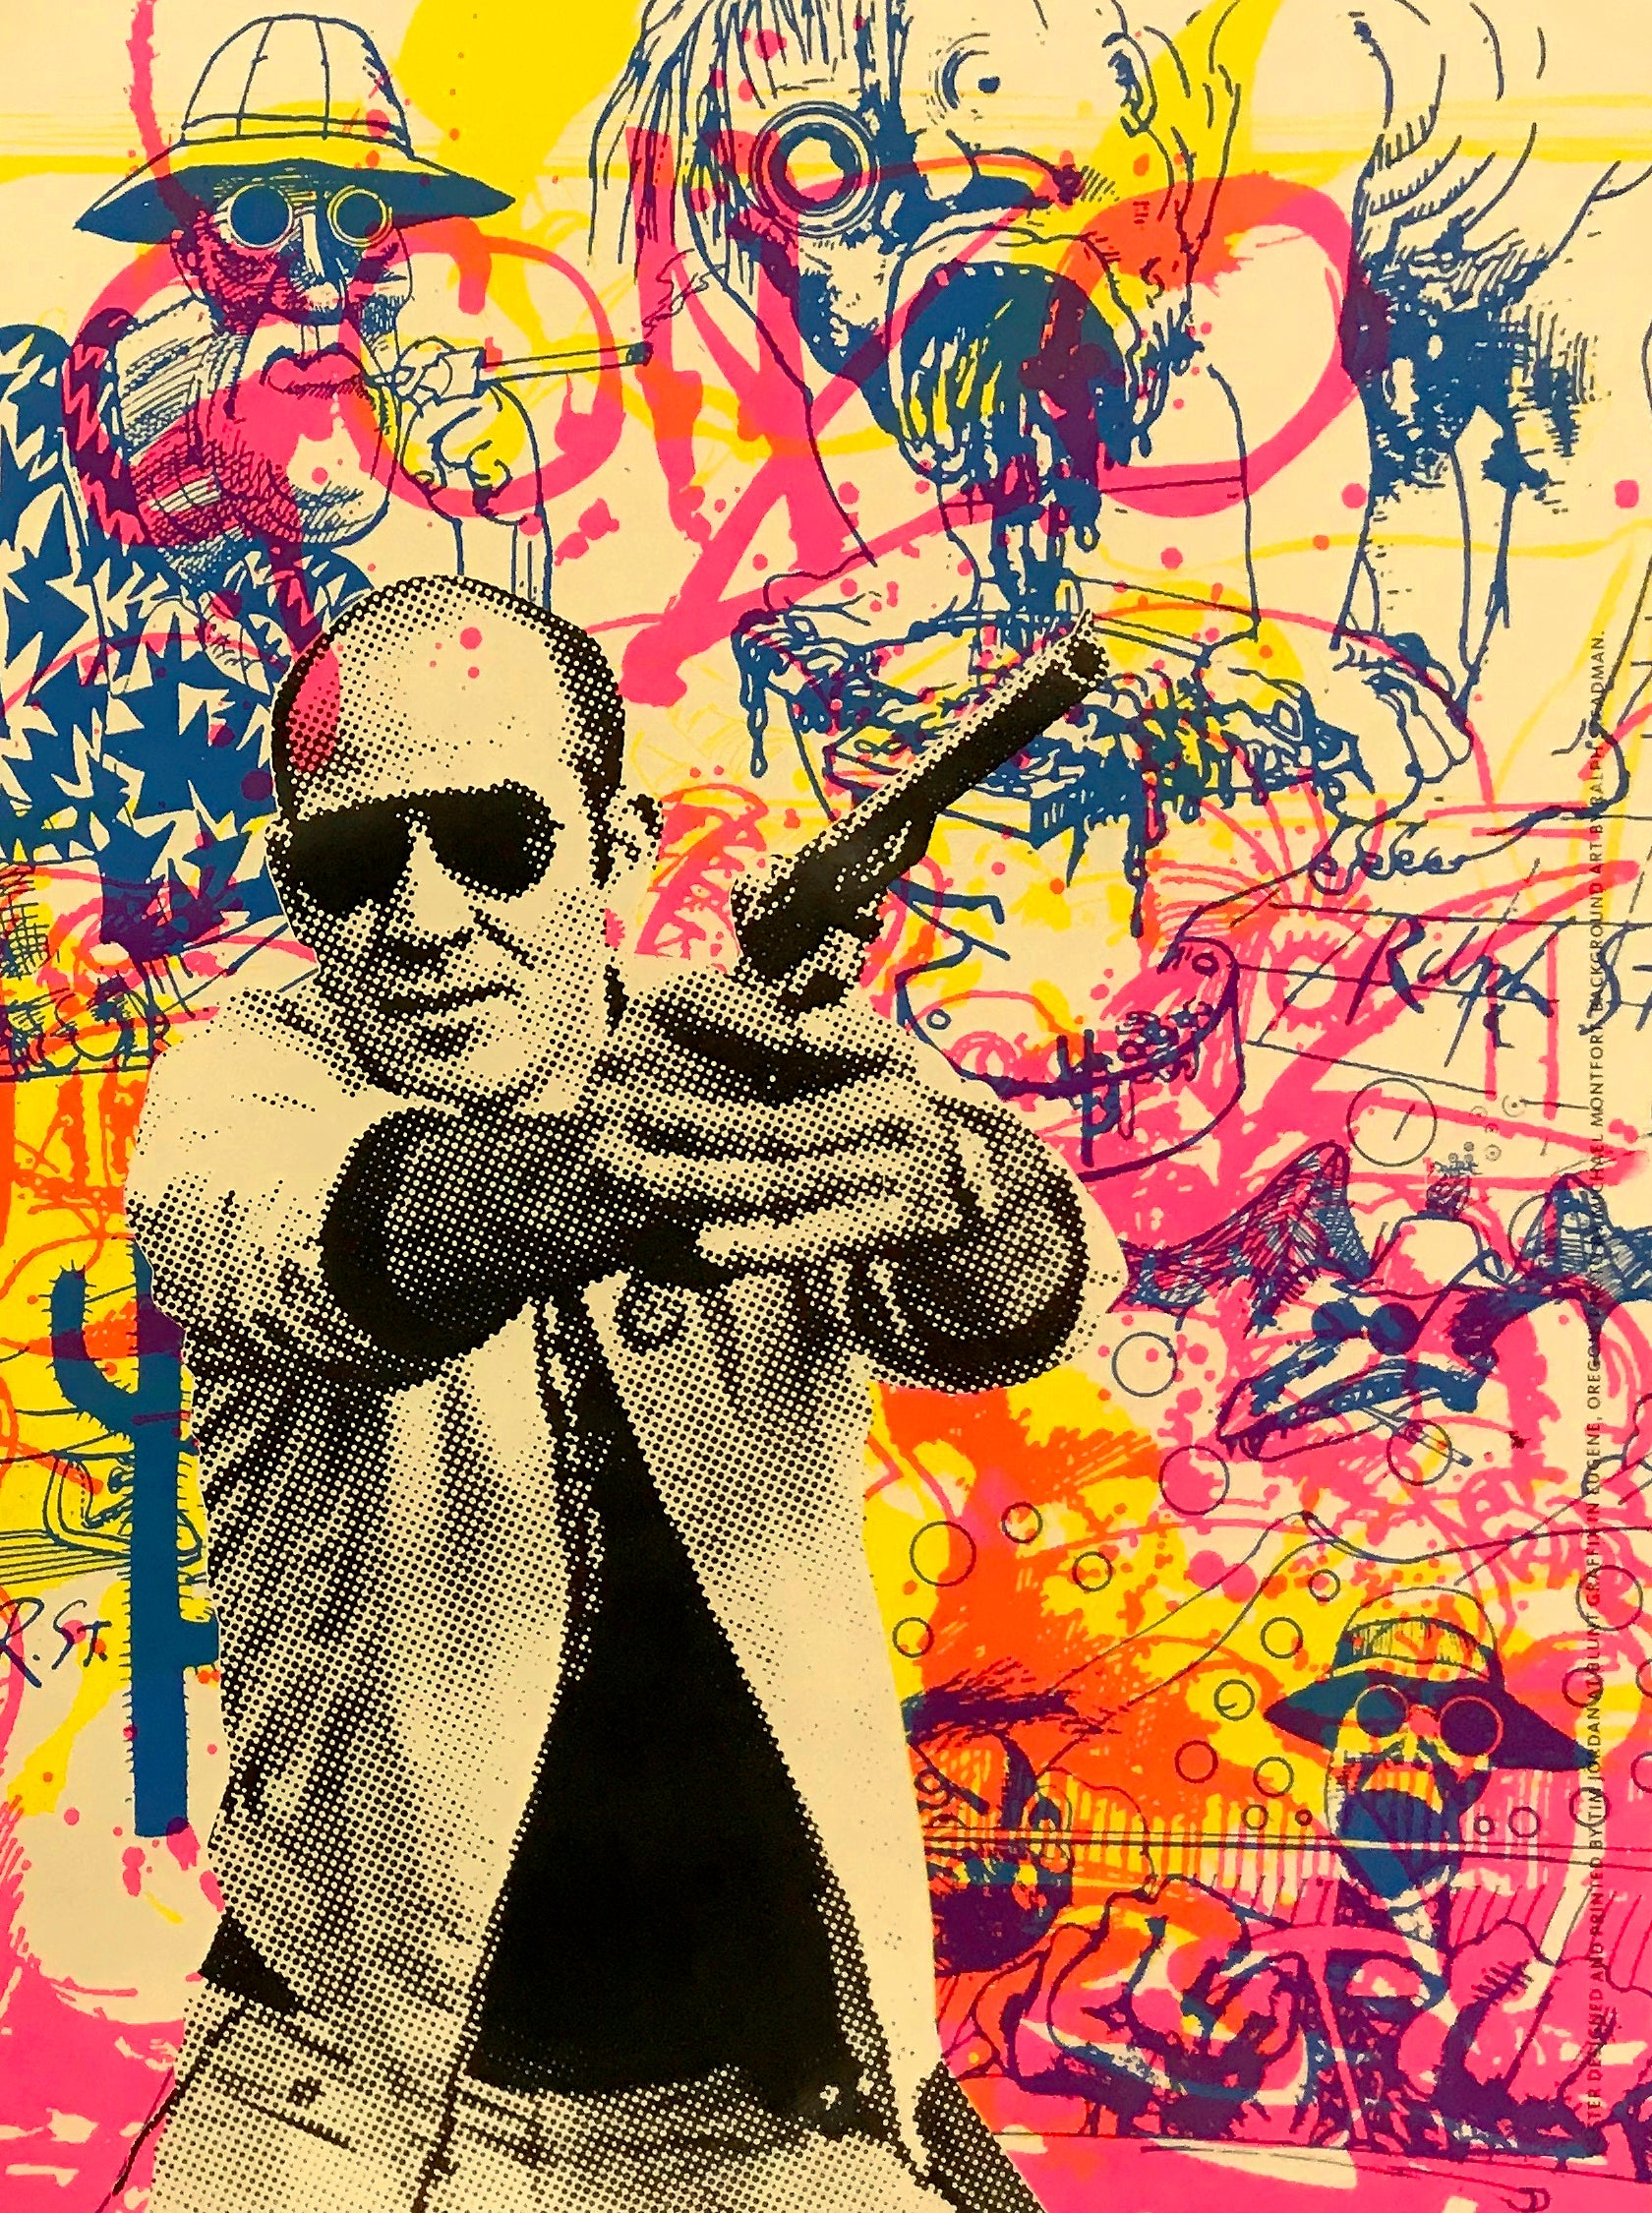 Buy The Ticket, Take The Ride // Loaded Guns 2 Exclusive Print by Tim Jordan & Blunt Graffix